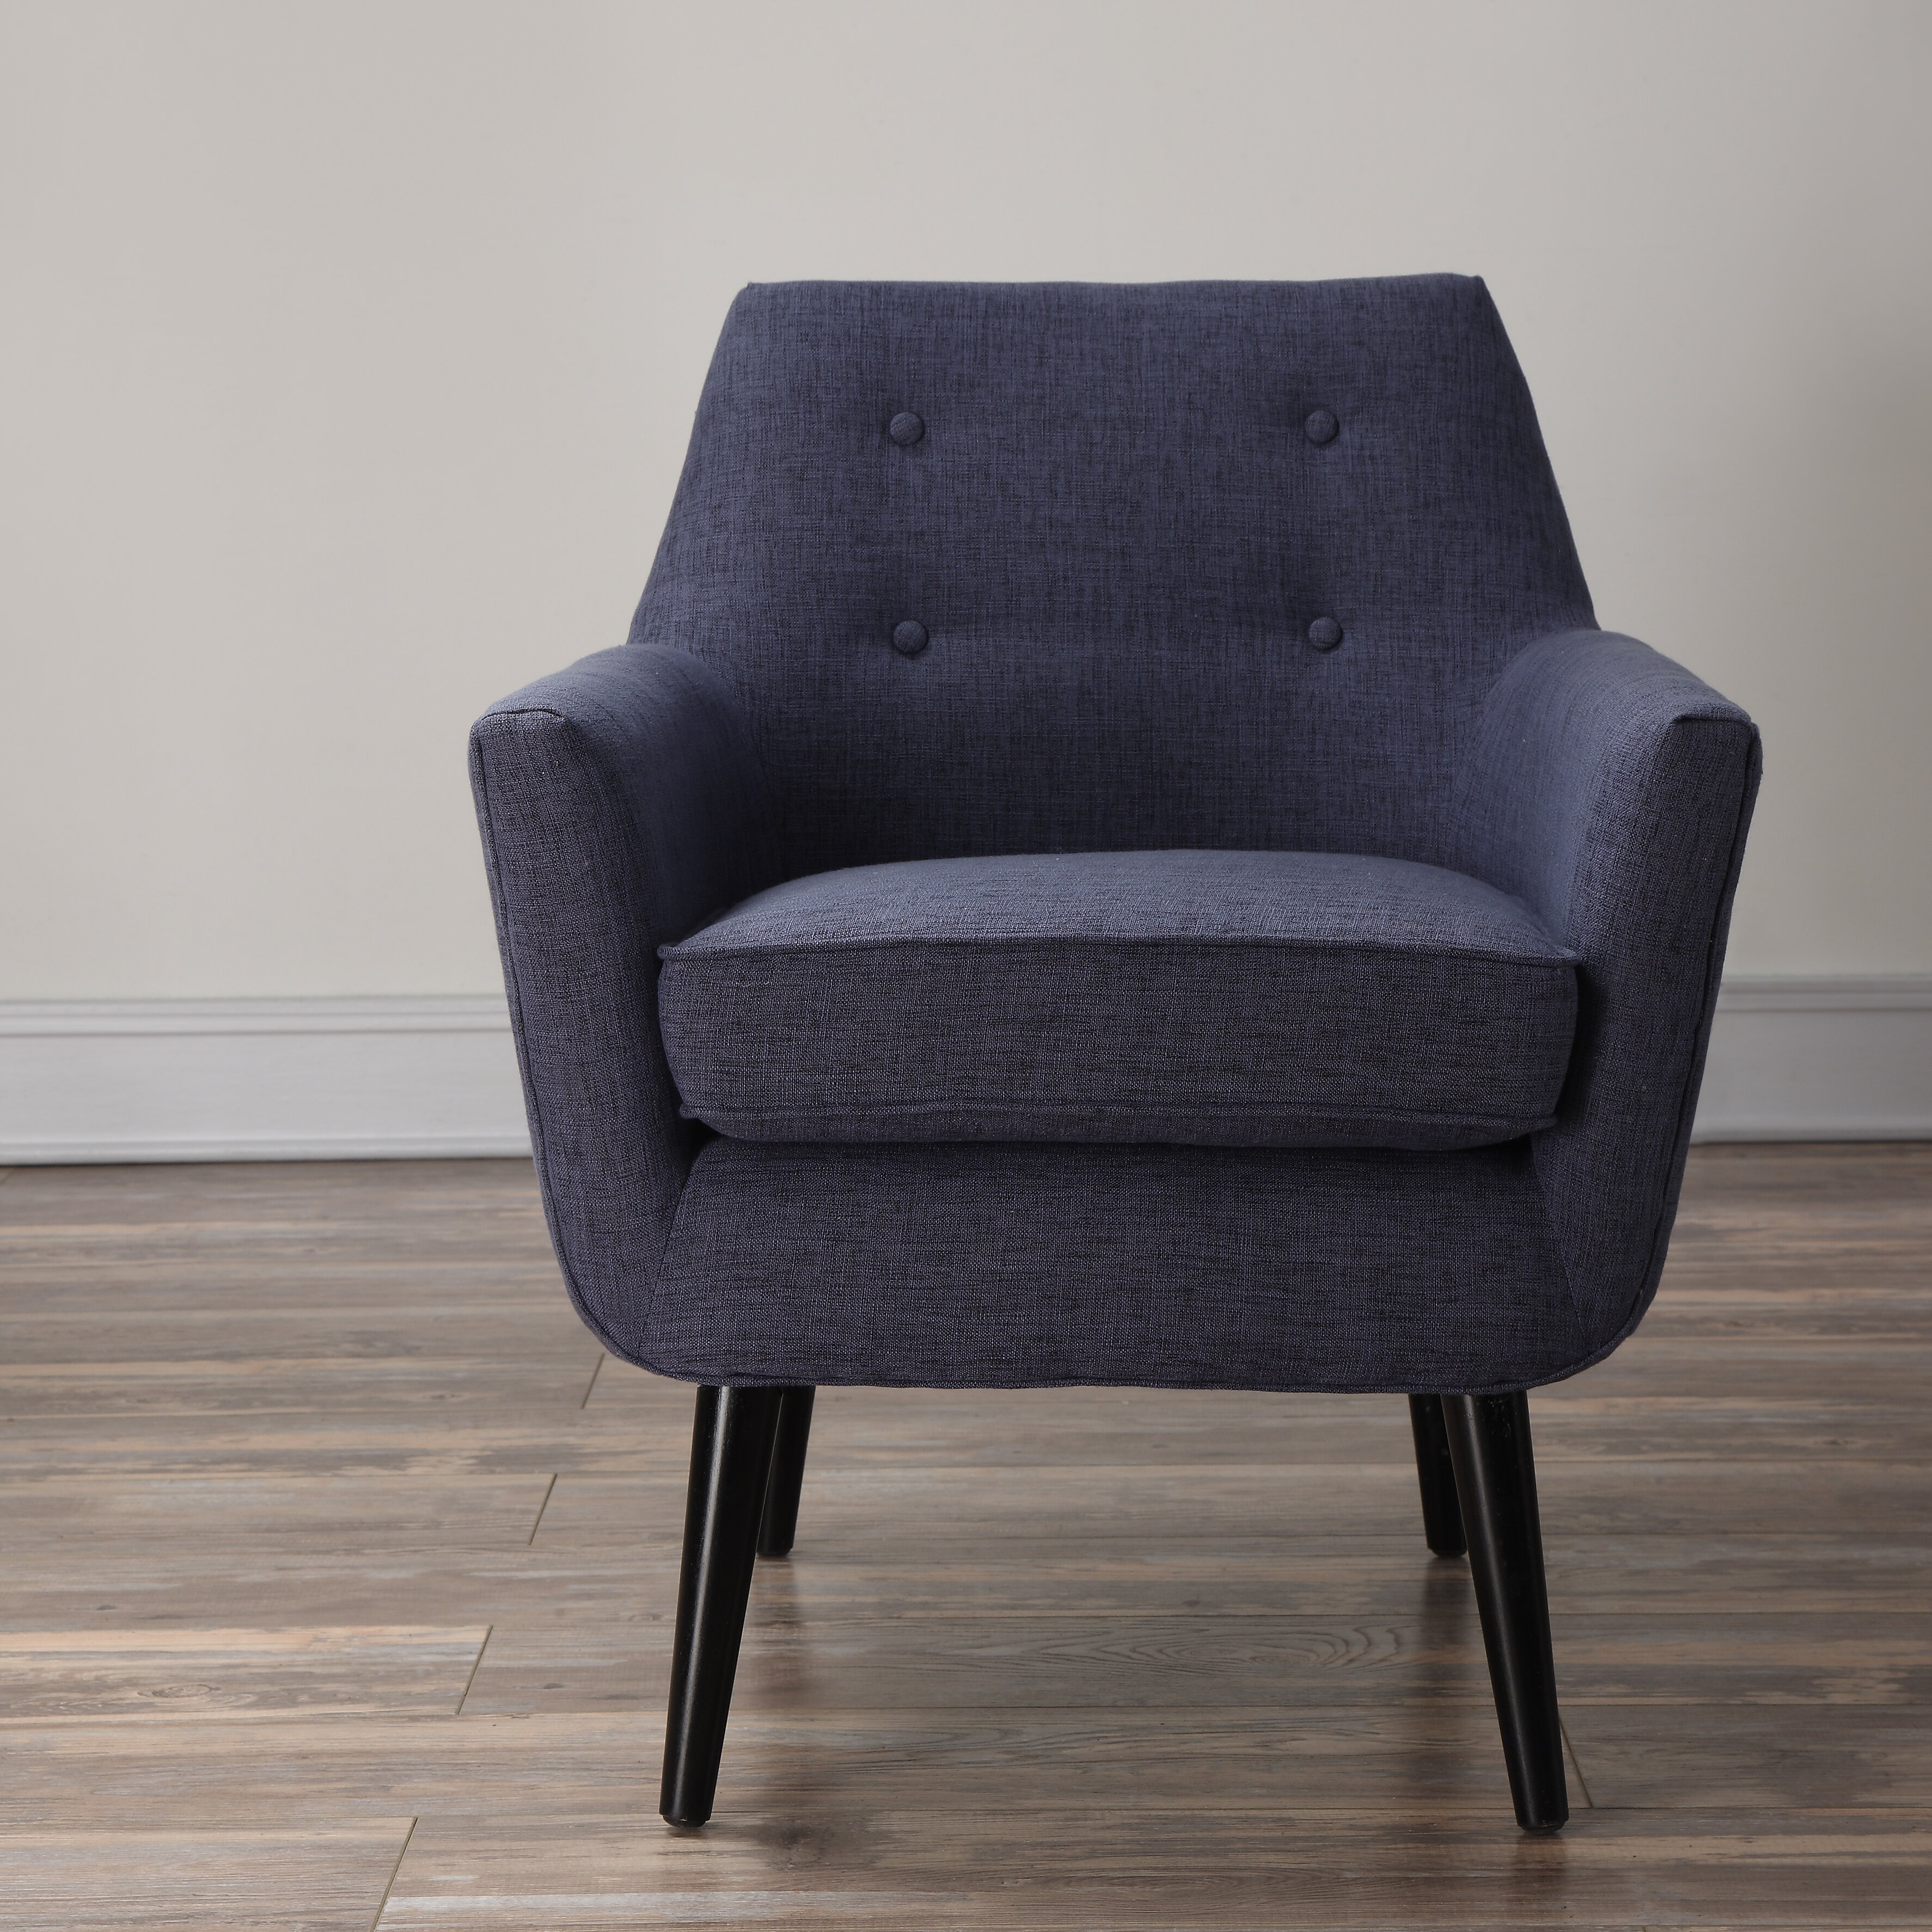 Living room swivel chairs canada 12 living room swivel chairs canada